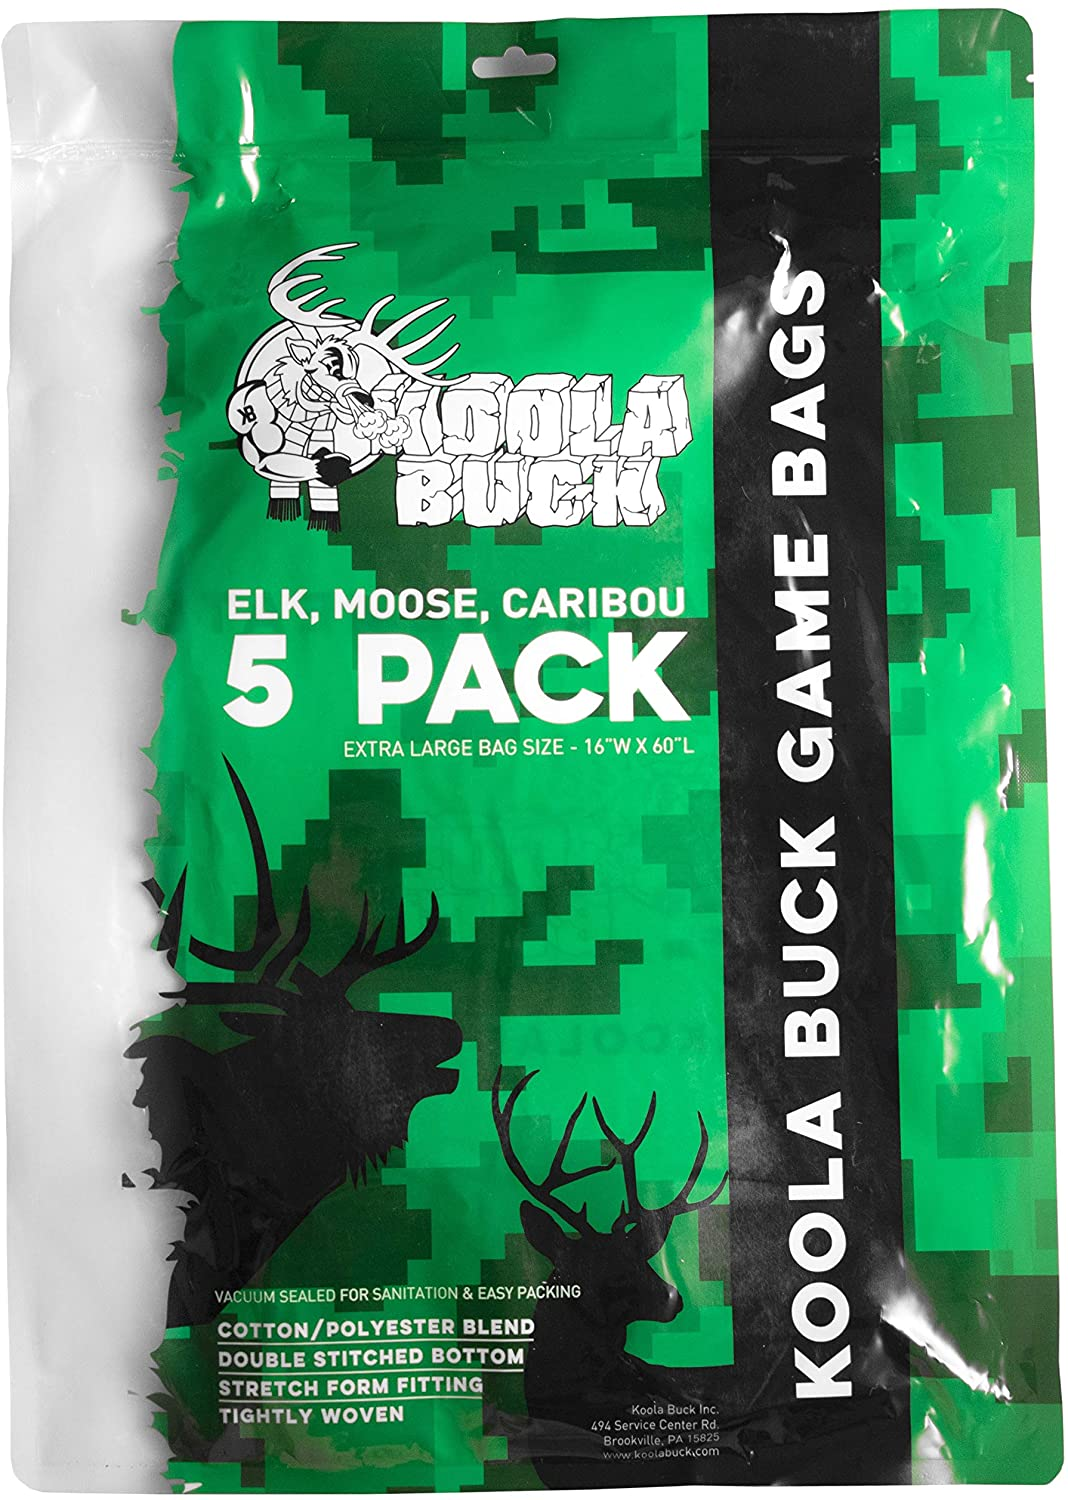 5-Pack XL Game Bags for Elk, Moose, and Caribou